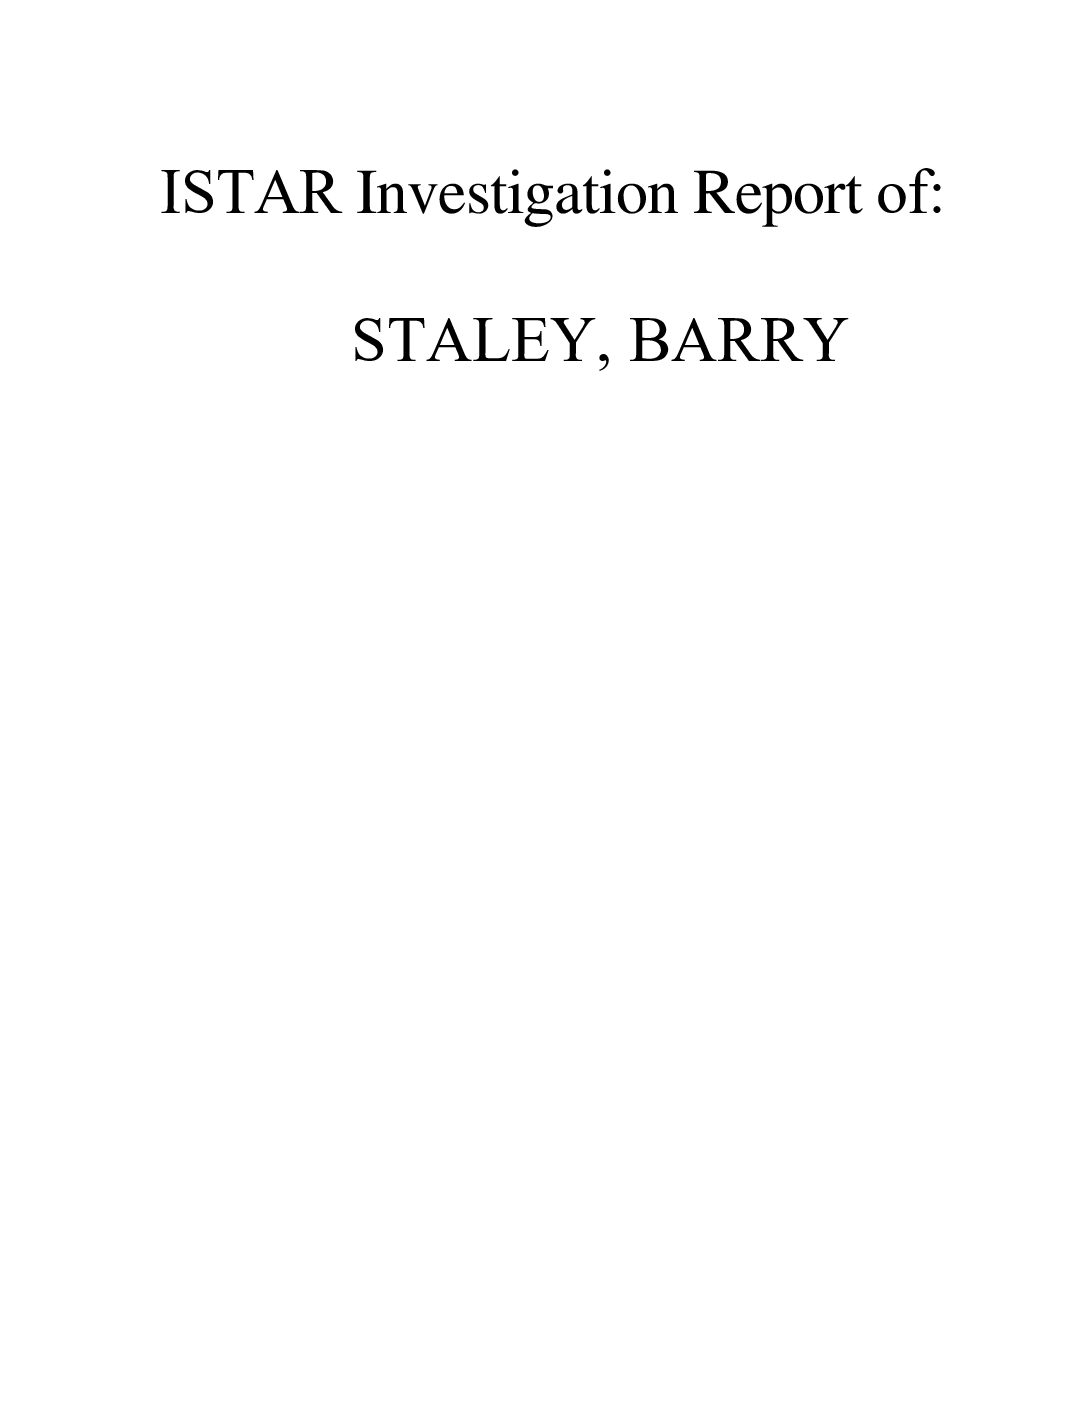 Investigation Report Staley